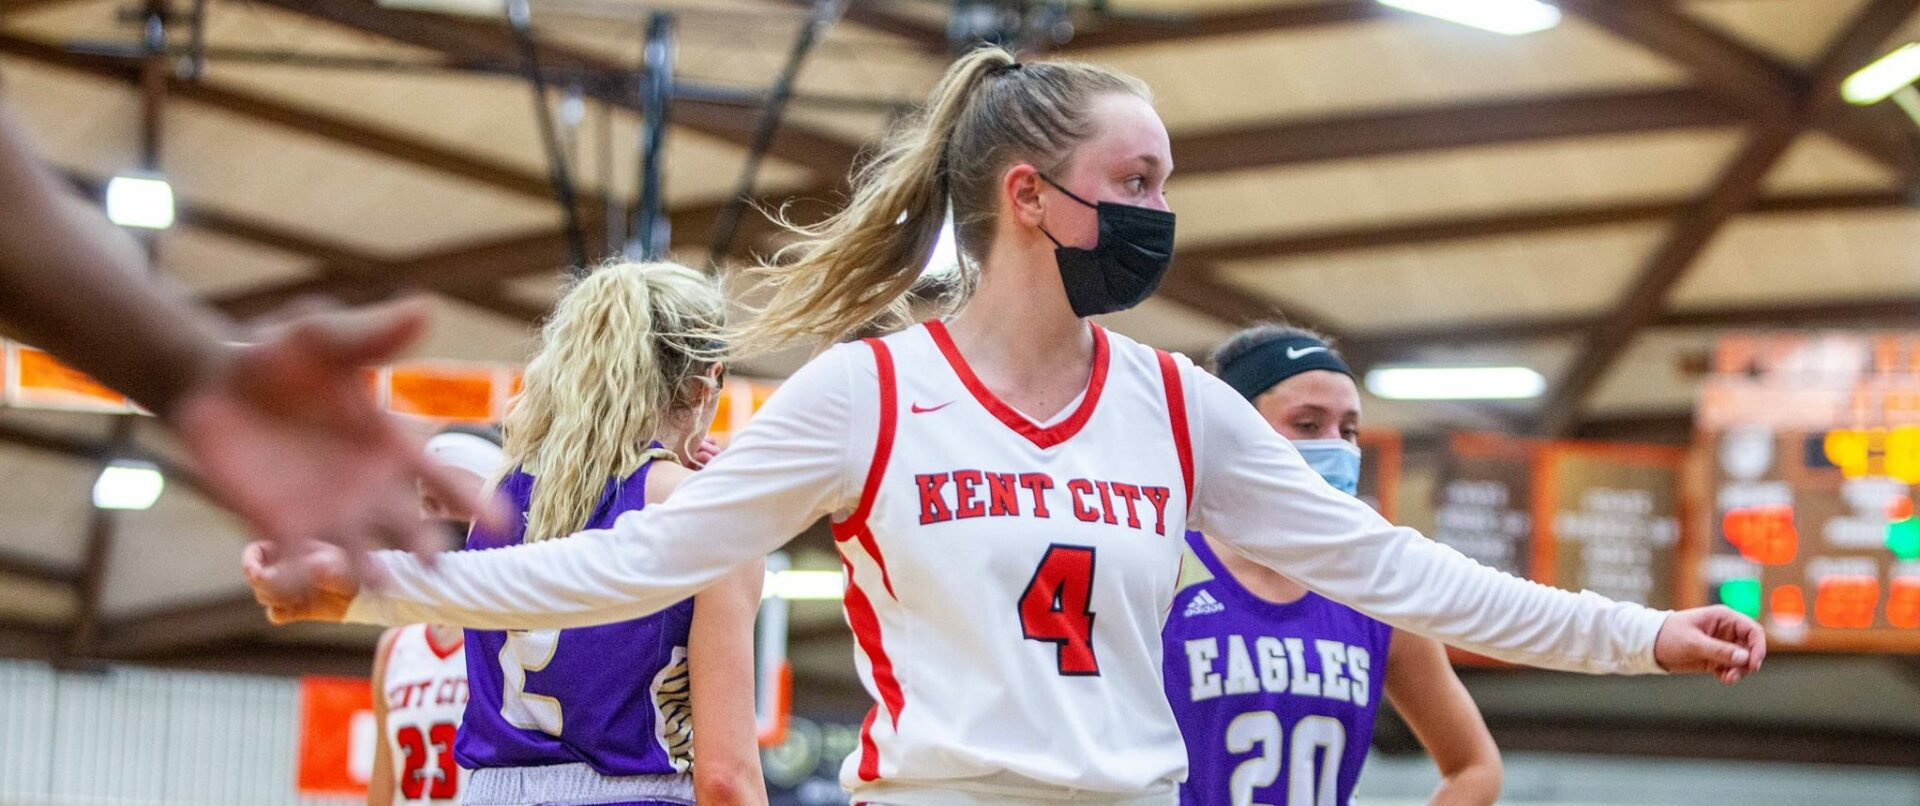 Talented and determined Kent City girls basketball team prepared for its final push toward a Division 3 state championship